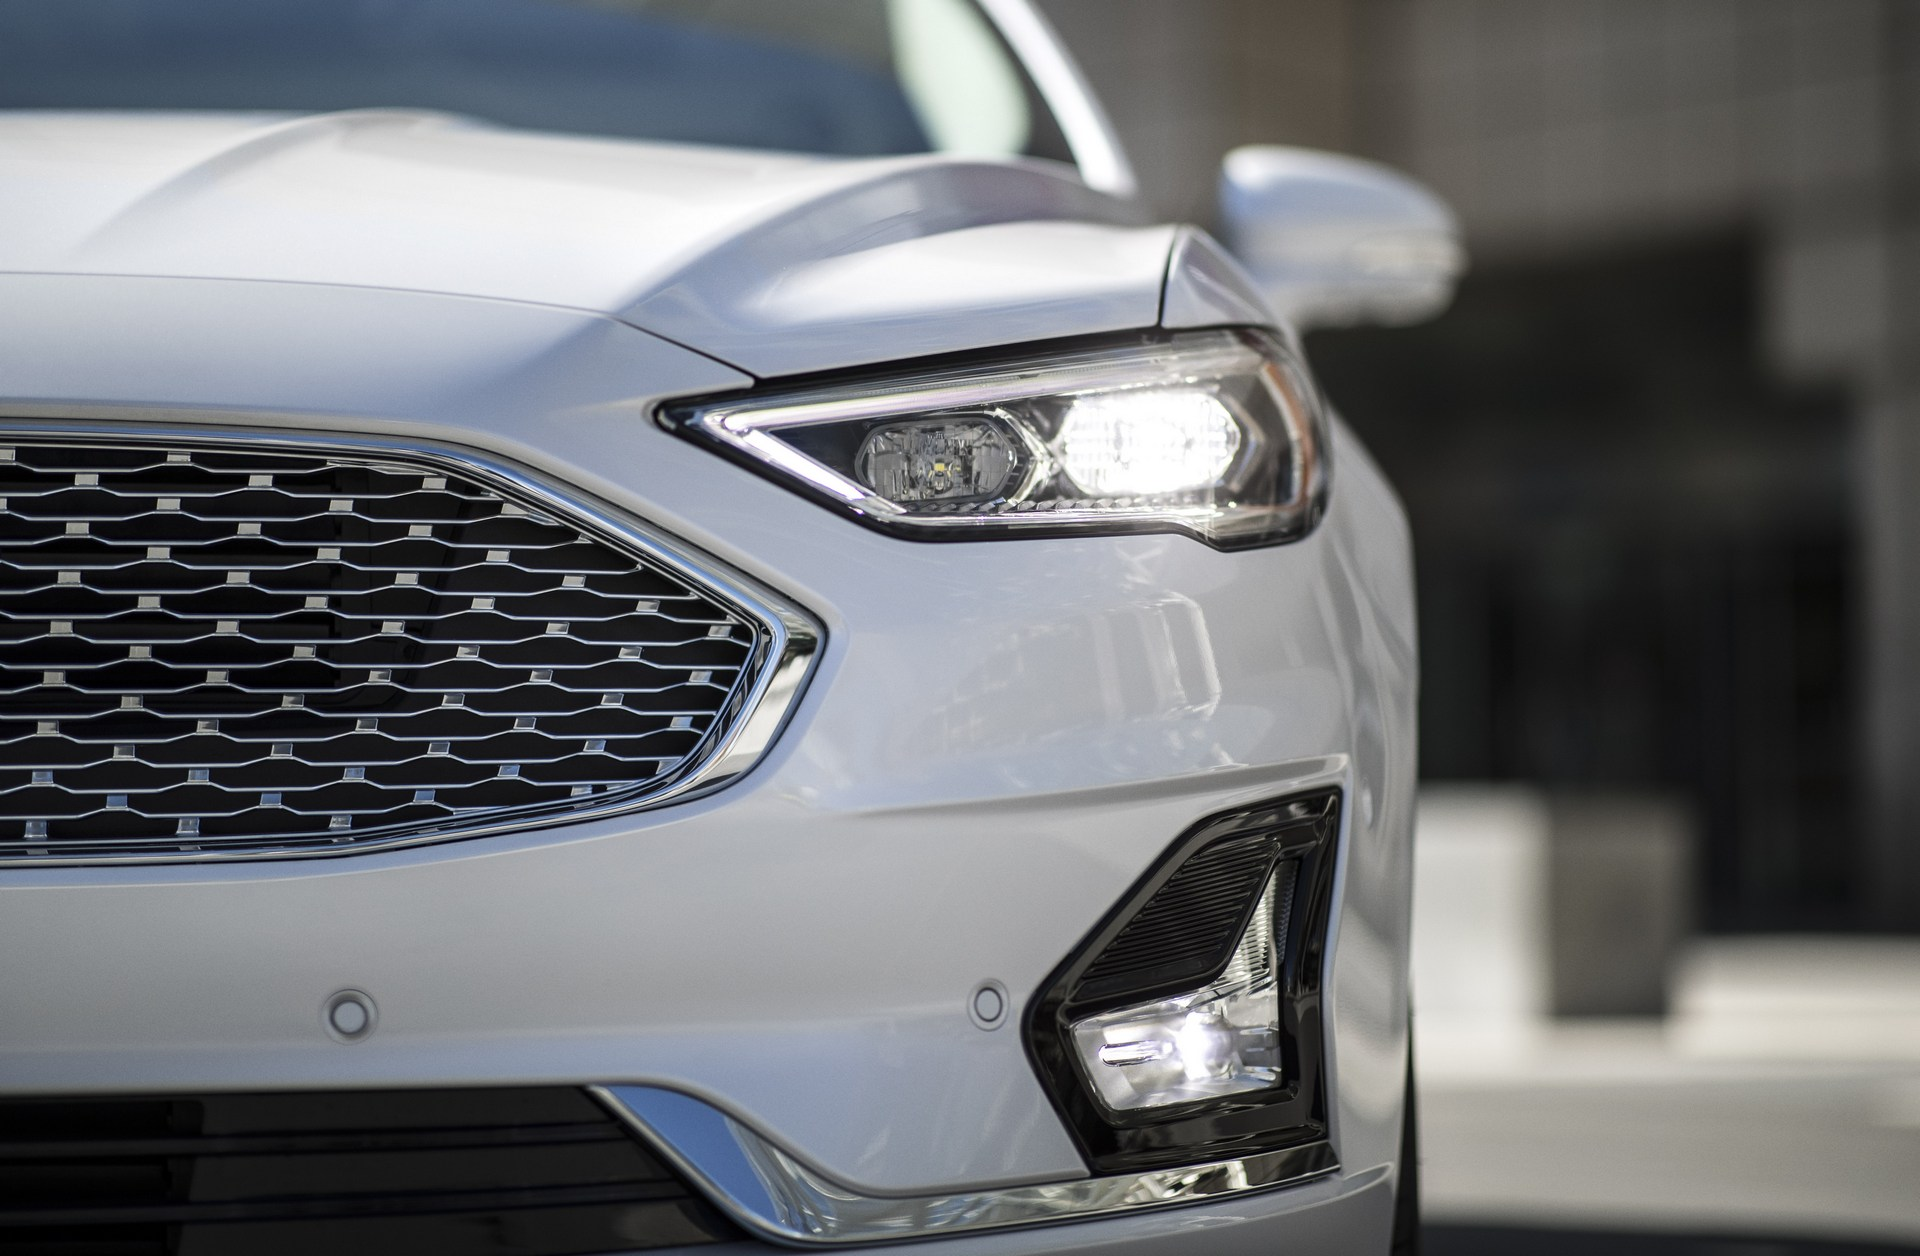 2019 Ford Fusion Debuts With Minor Design Changes, More ...